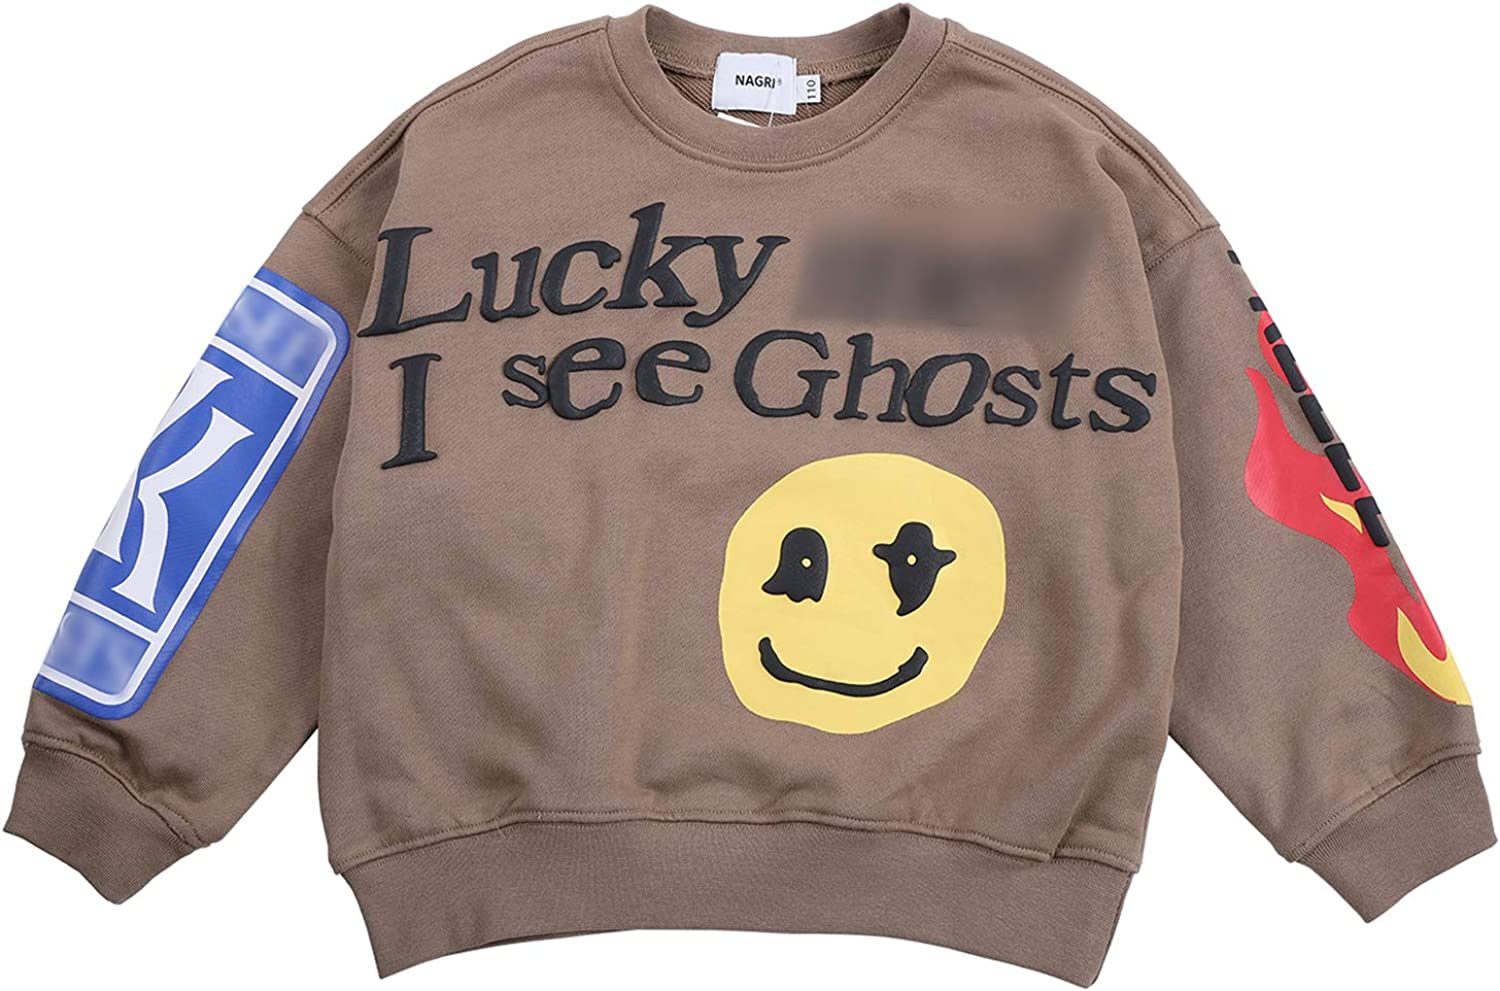 Keruimeihao666 Kanye Lucky Me I Crewneck New Orleans Mall See Sweatshirts New life Ghosts